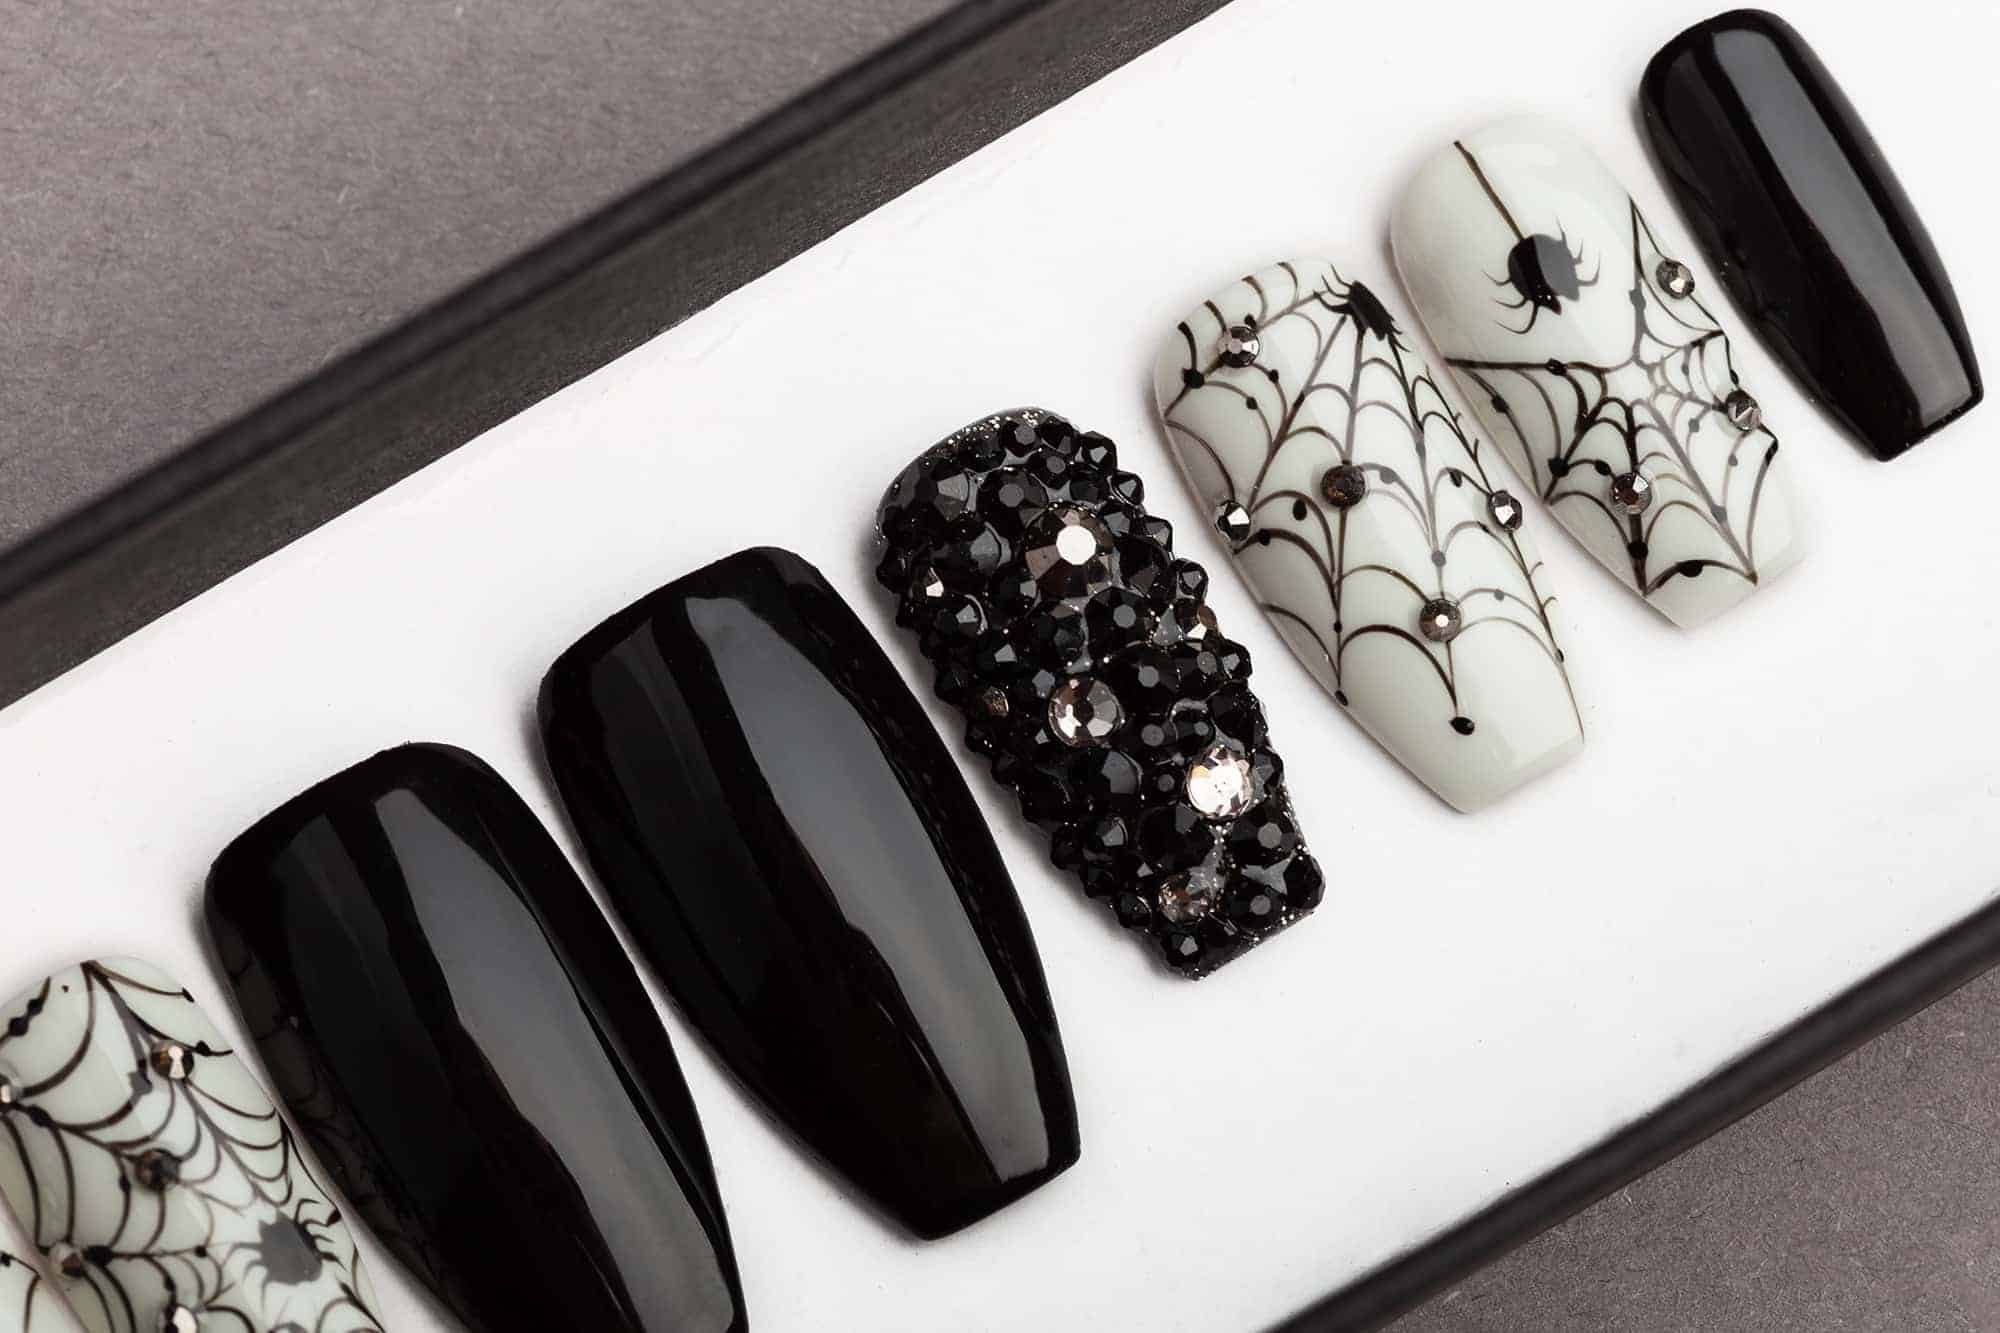 Spiders & Nets Halloween Press on Nails with Swarovski Crystals | False Nails | Glue On Nails | Hand-painted Nail Art | Fake Nails